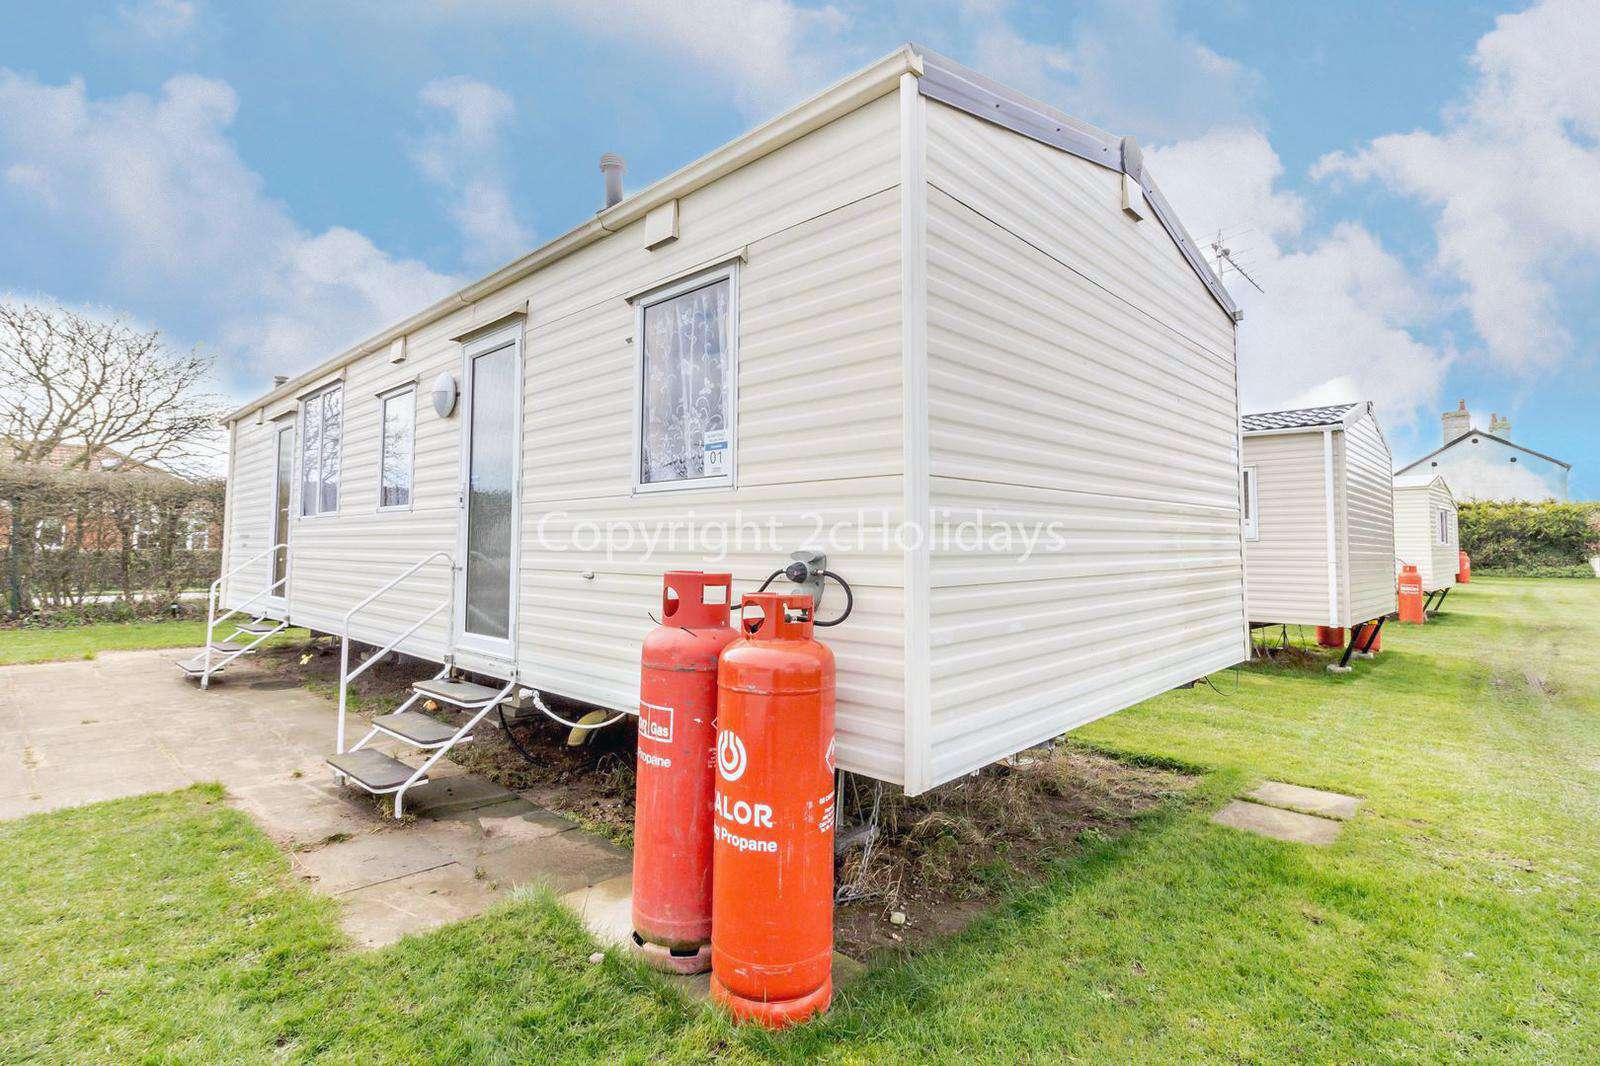 Superb 8 berth mobile home, great for families!